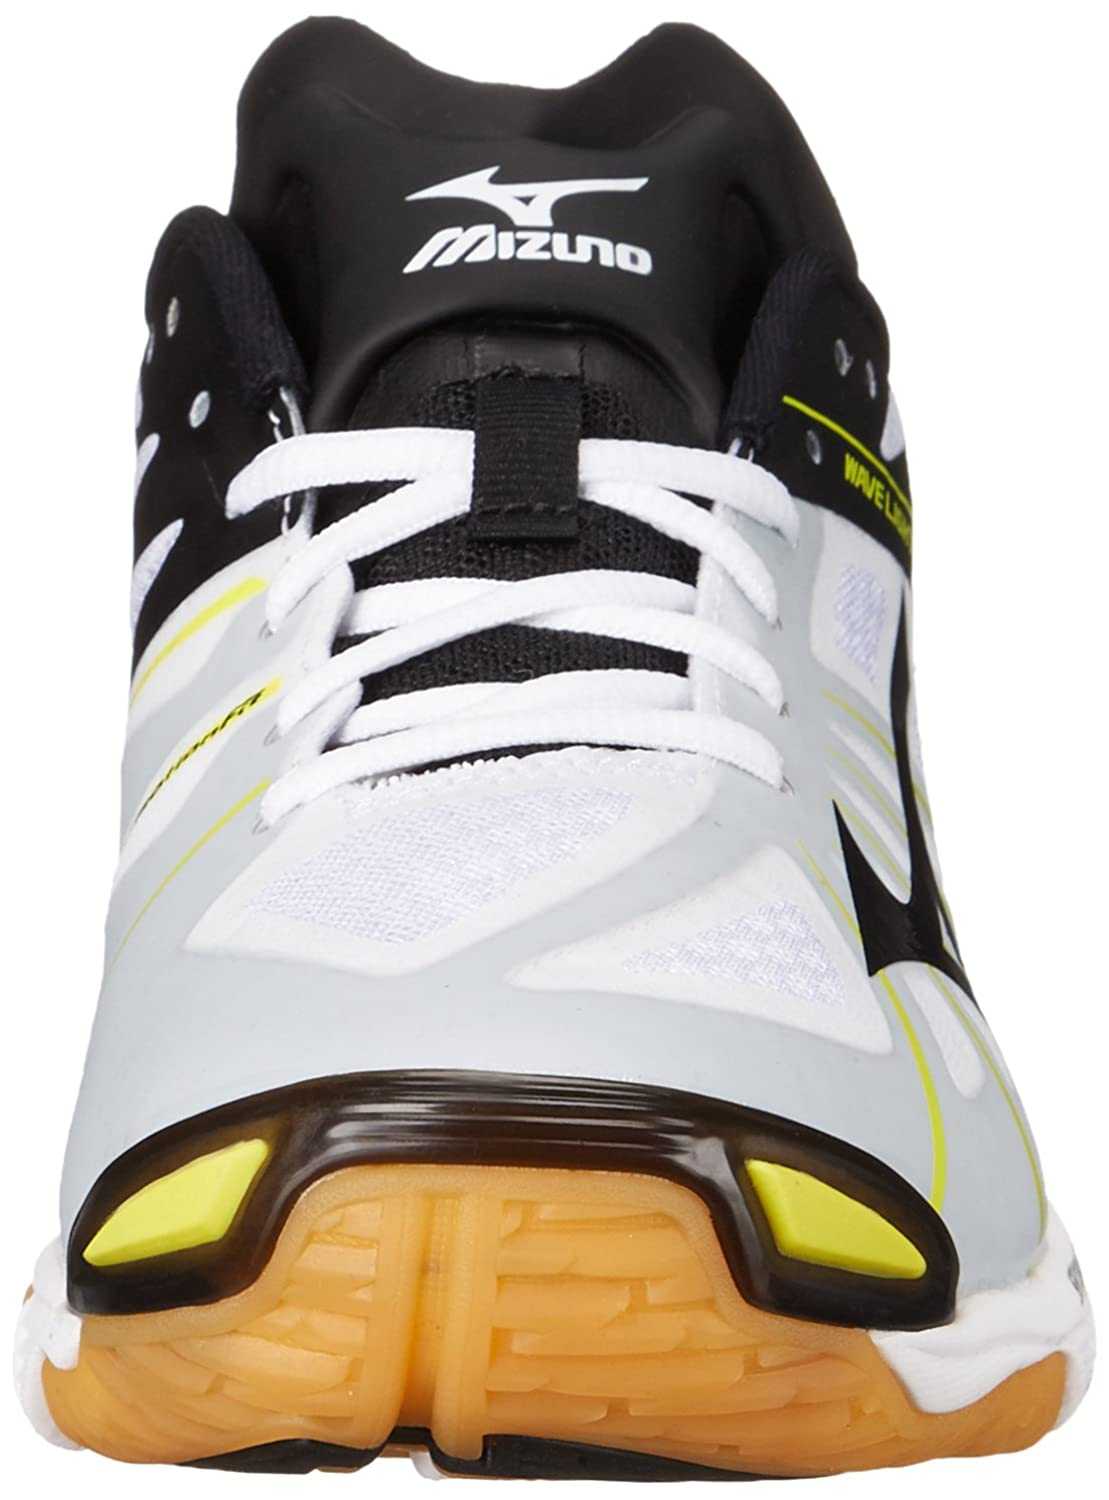 Mizuno Chaussures De Volley-ball Hommes Amazon 5z6TkvRxt